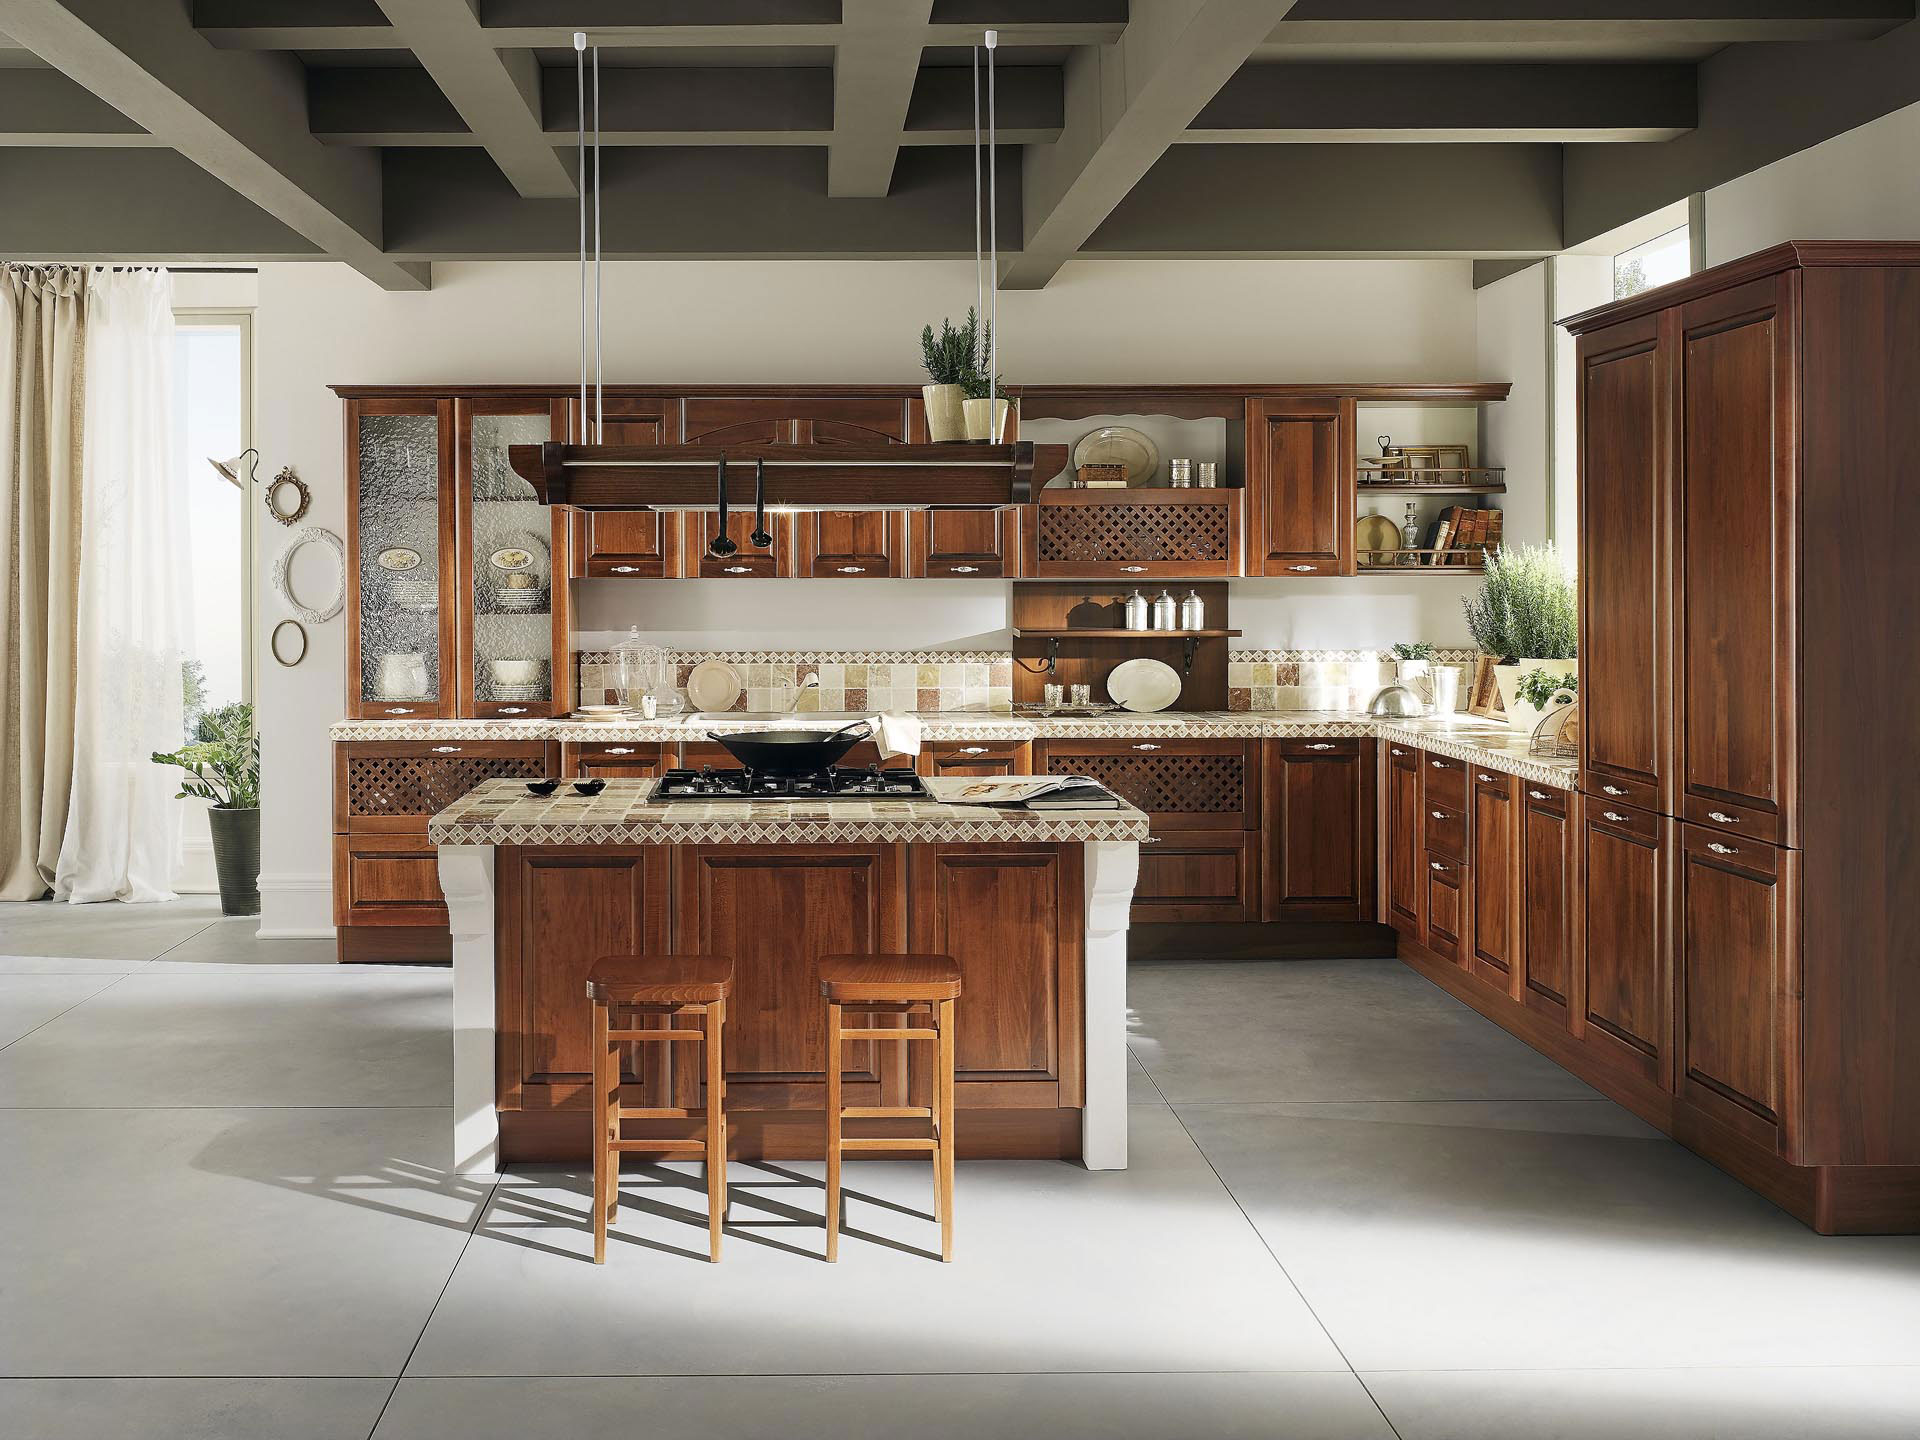 Cucina Veneta Shabby Cucine On Line Outlet Stunning Cucine Design Outlet Ideas Outlet